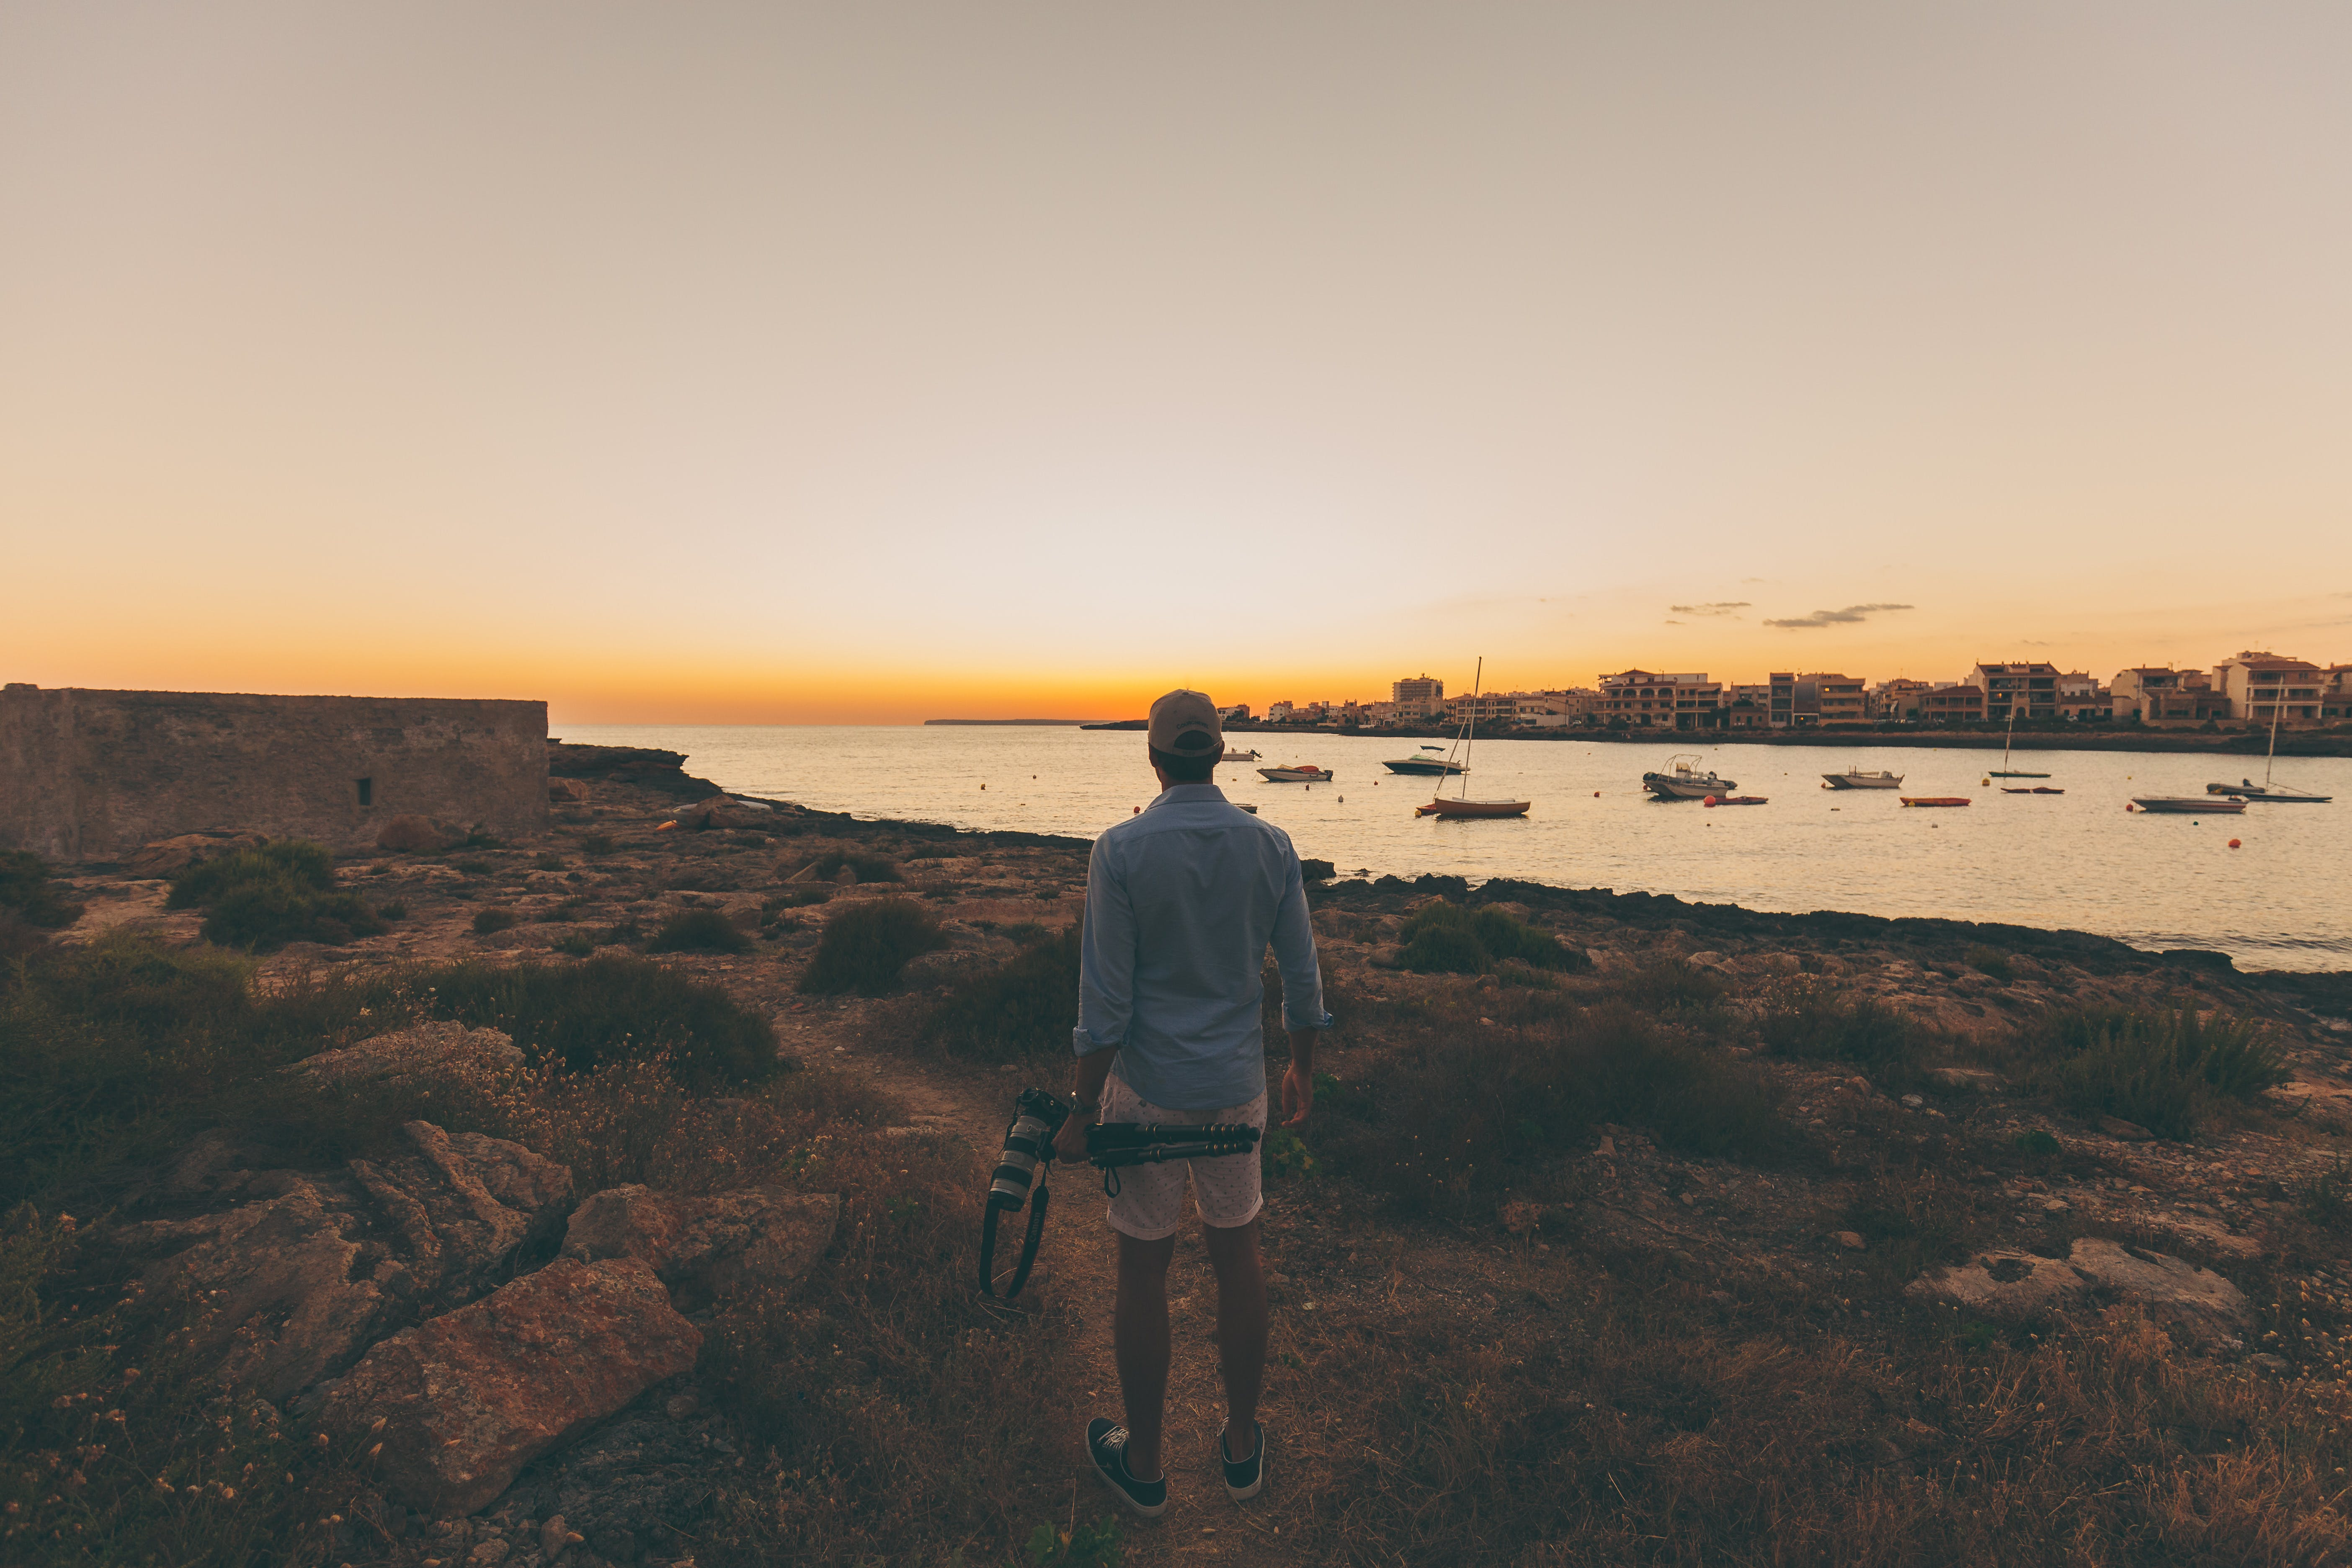 Man Standing on Pathway Near Rocks and Body of Water